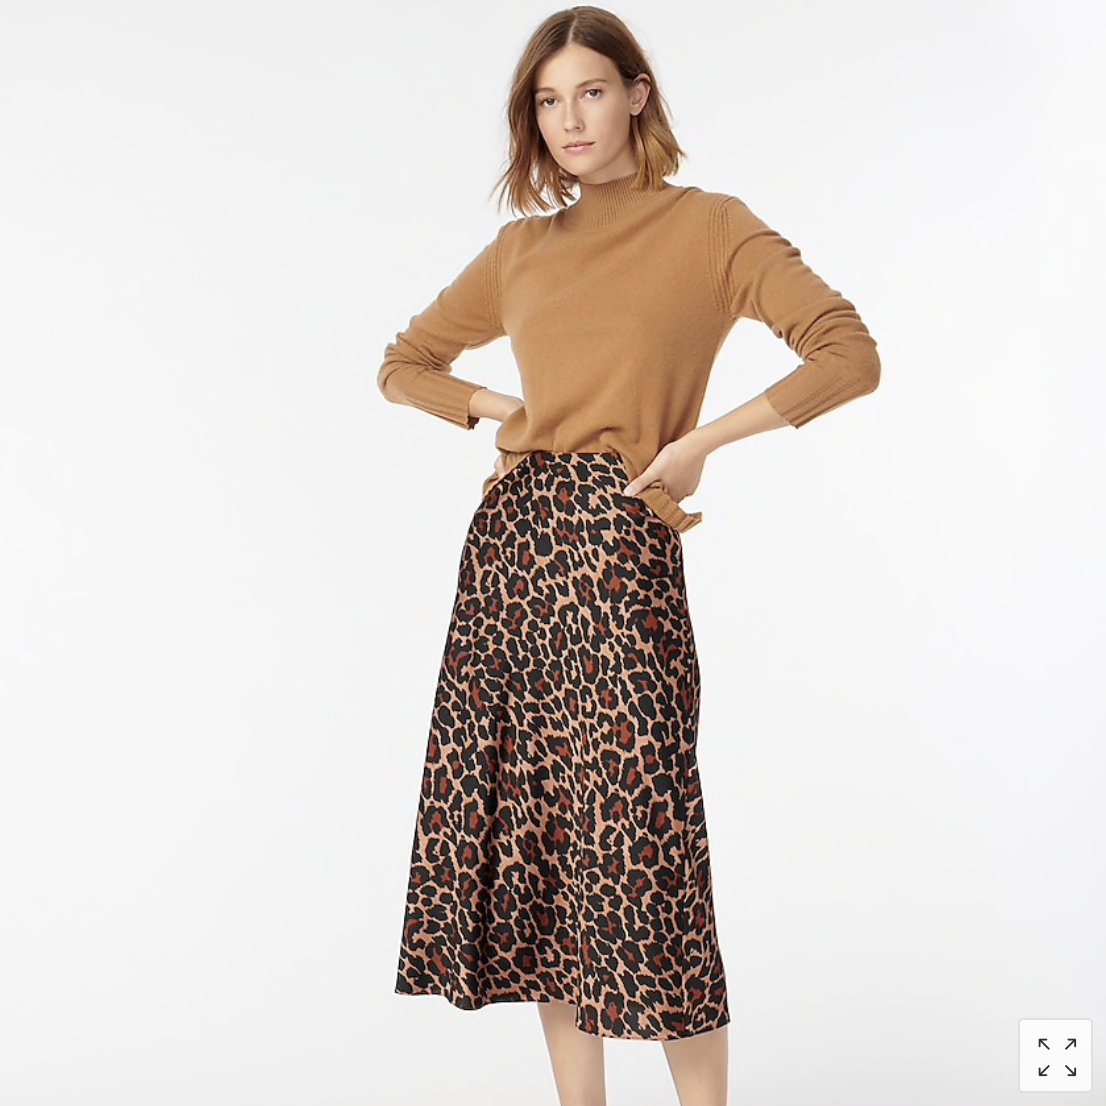 50 Off J Crew Black Friday Sale Early Access Kelly In The City In 2020 Fall Fashion Outfits Preppy Fall Fashion Autumn Fashion